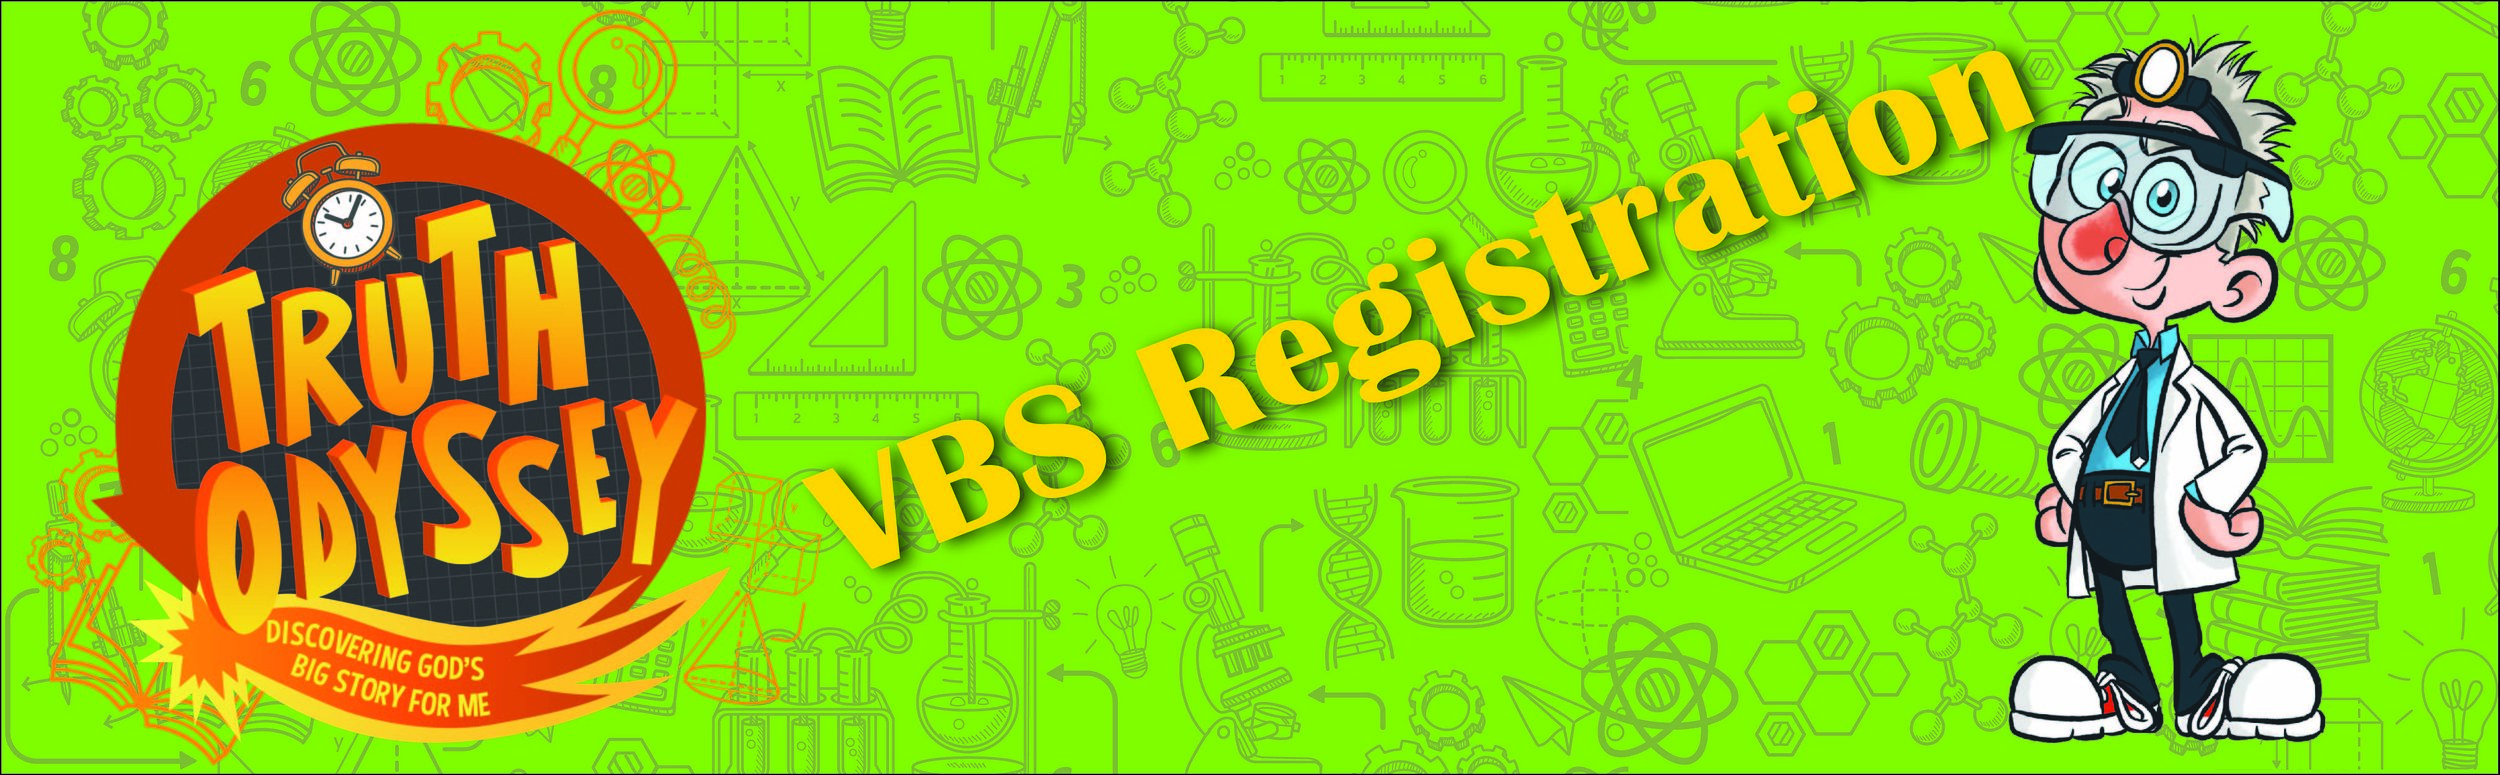 Registration Header-01.jpg